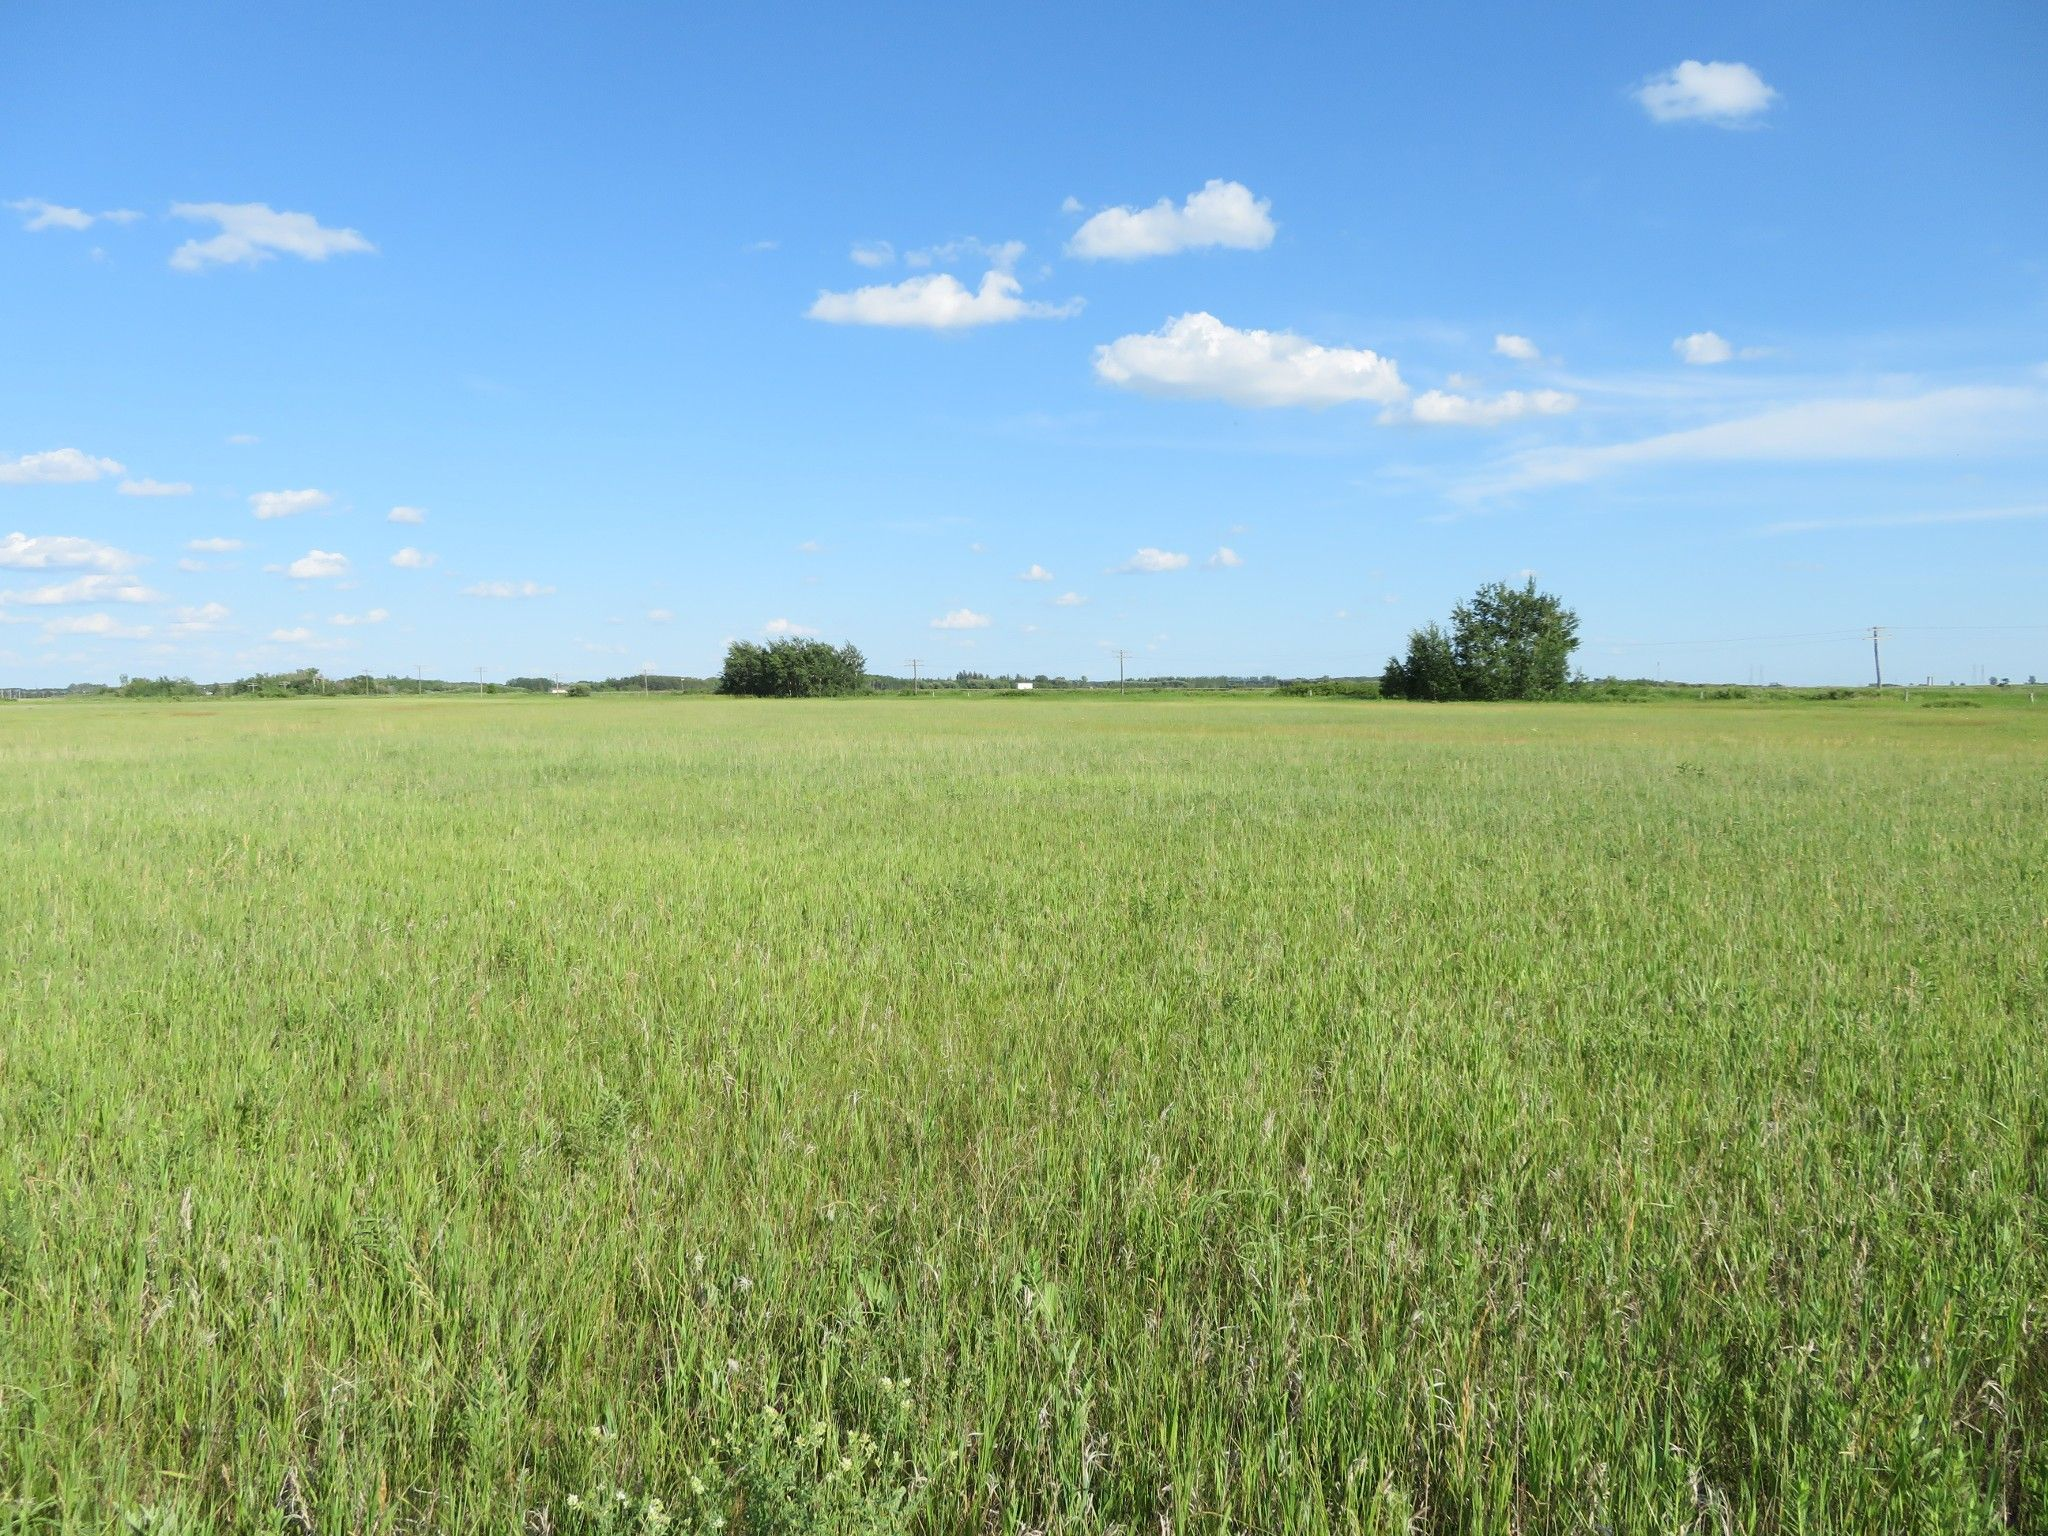 Main Photo: 0 PTH 15 Highway in Dugald: RM Springfield Vacant Land for sale (R04)  : MLS®# 202016001